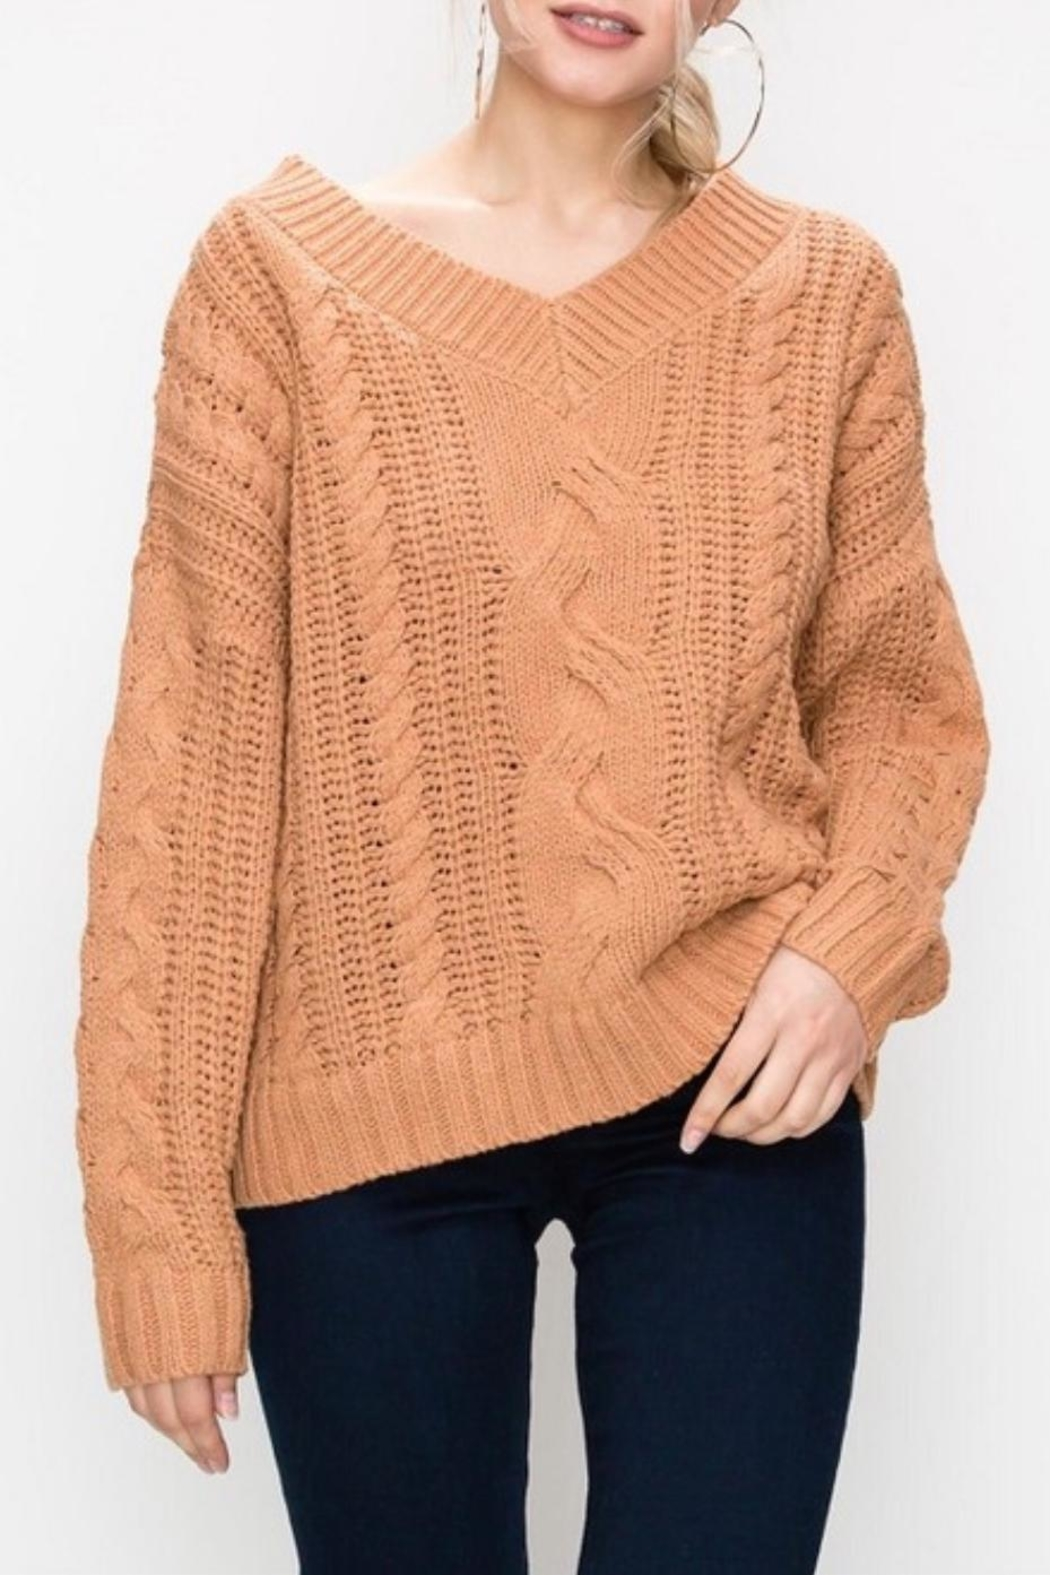 Favlux Apricot Cable-Knit Sweater - Main Image